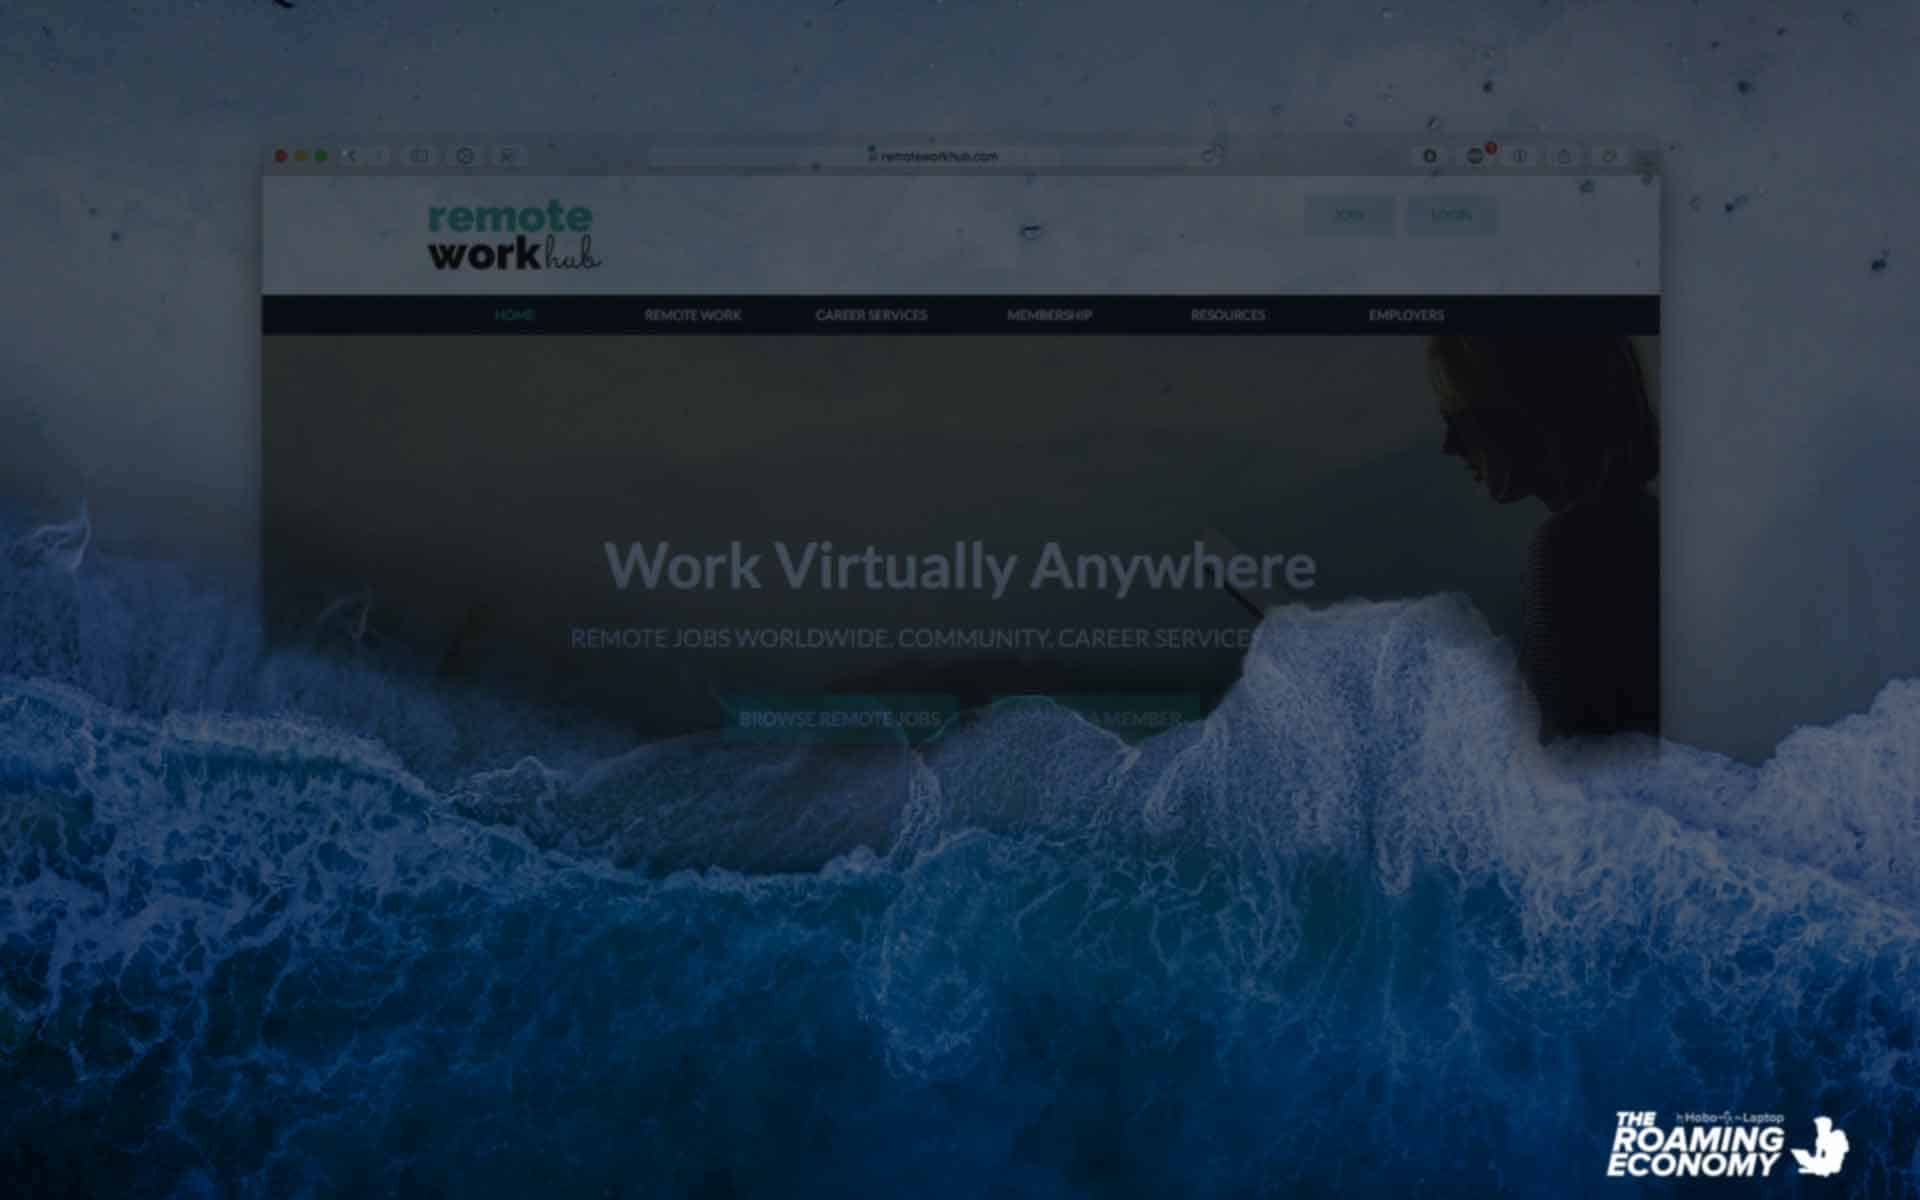 Remote Work Hub job site review